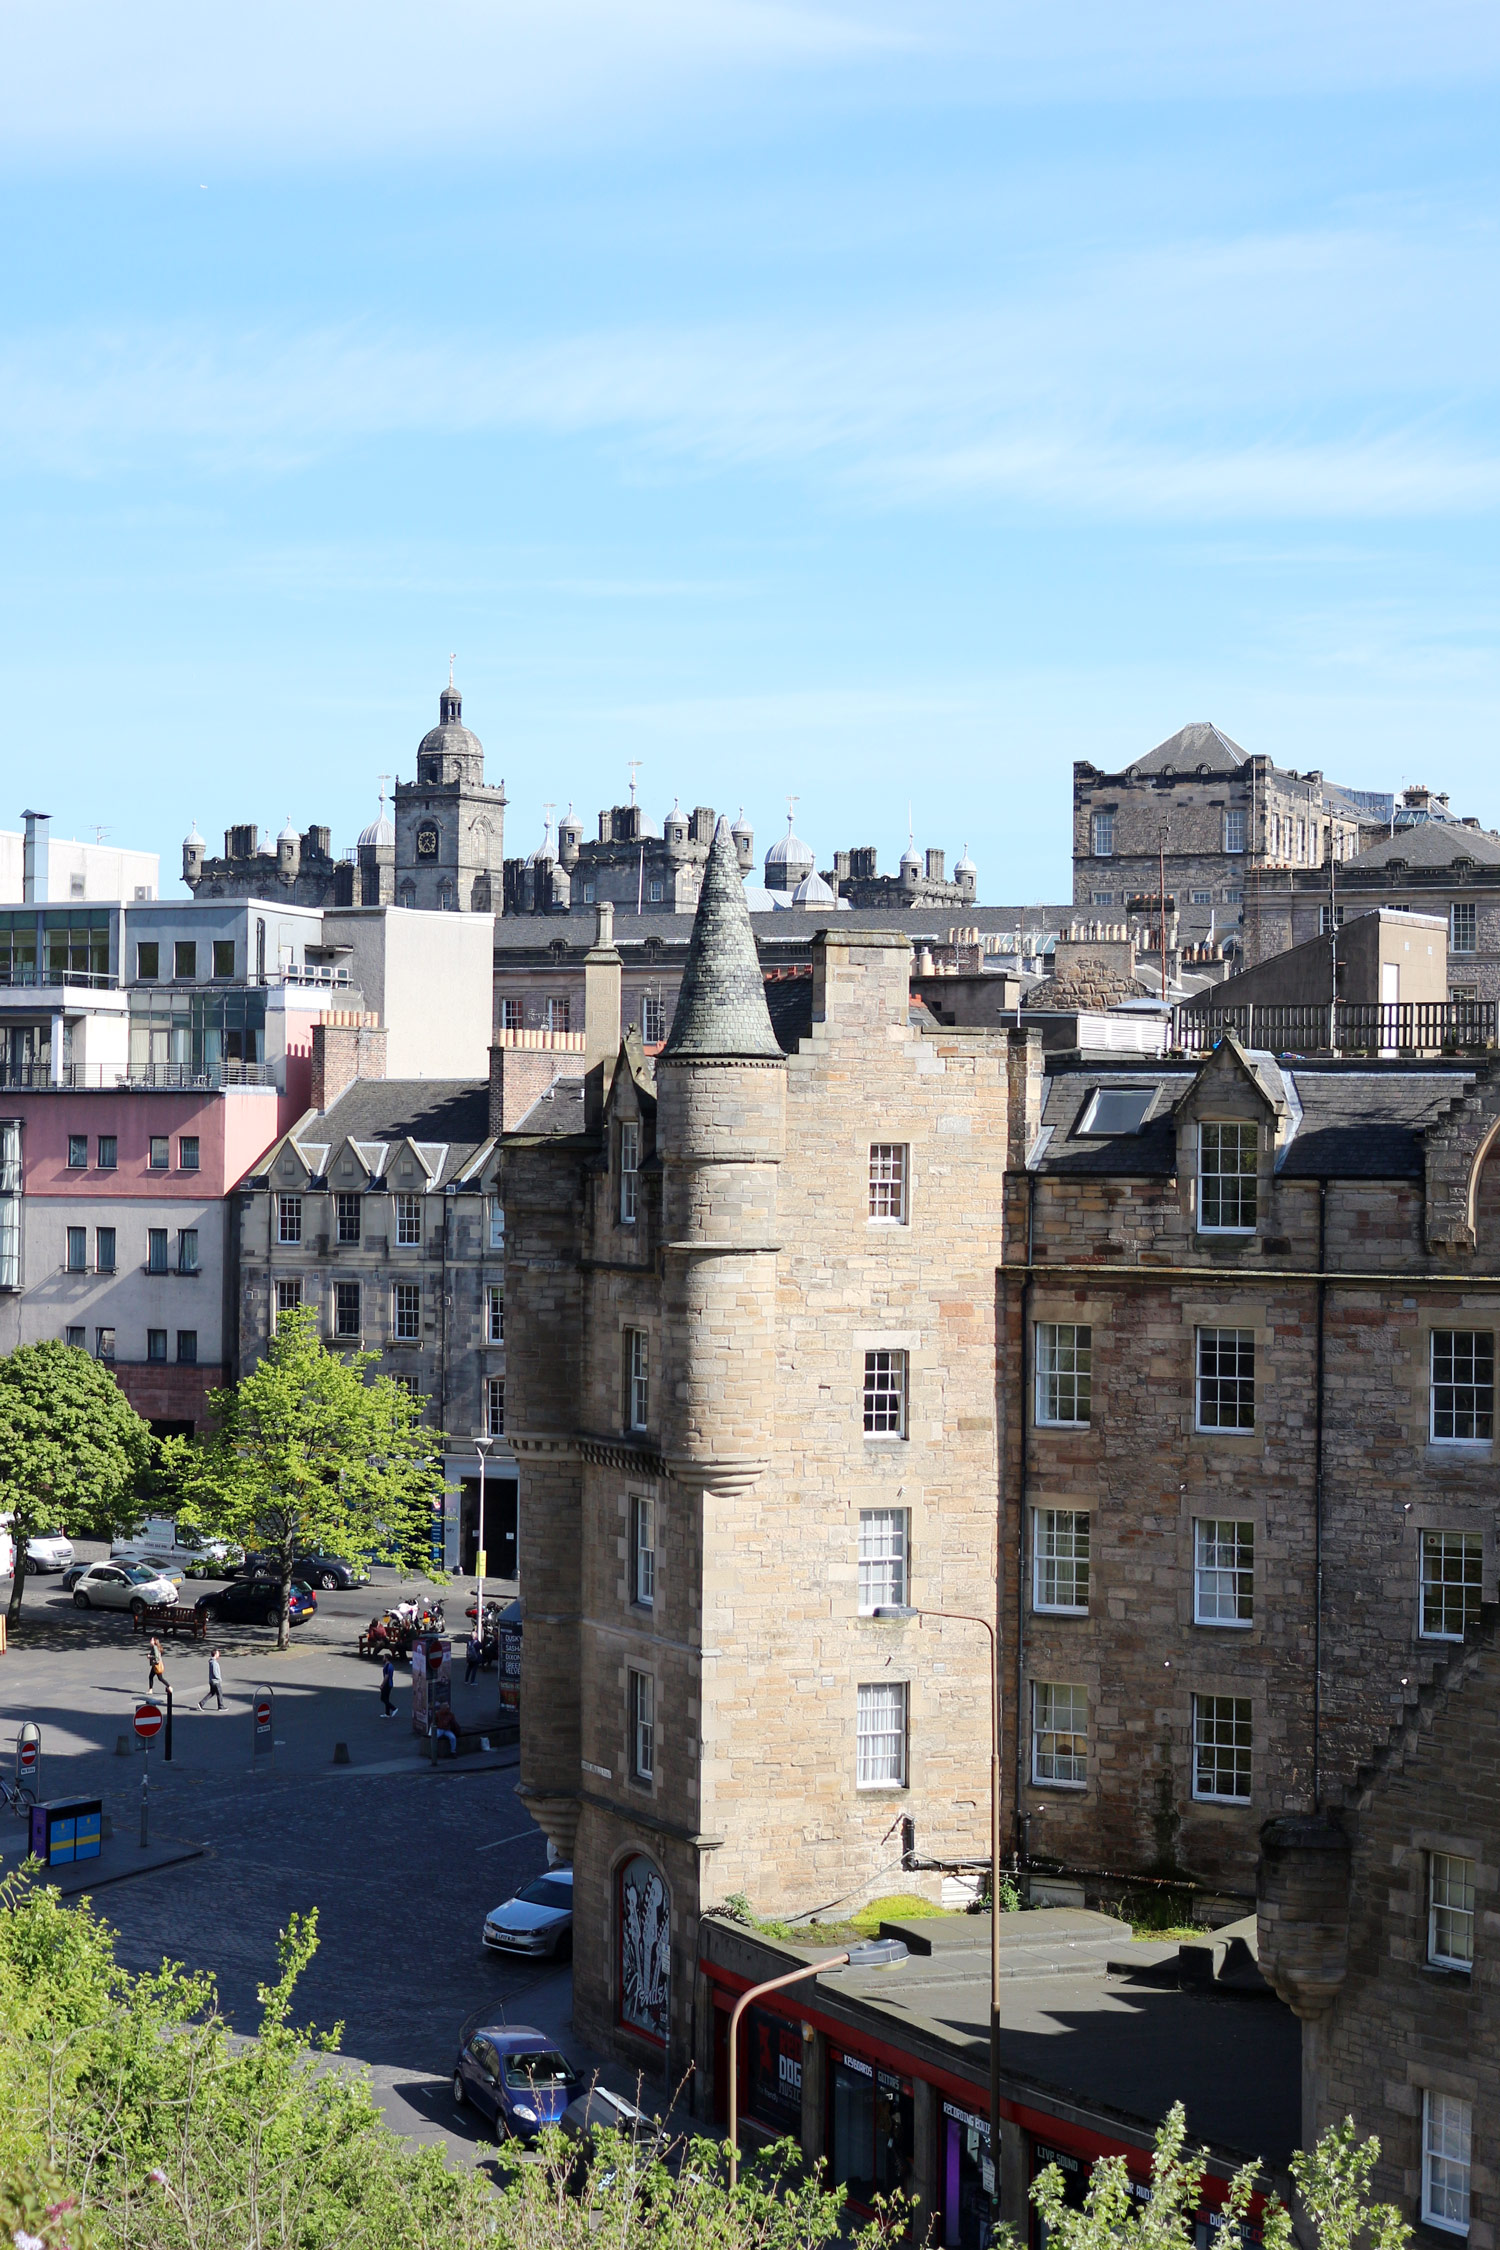 edinburgh-scotland-mercure-hotels-review-uk-travel-blogger-lifestyle-9